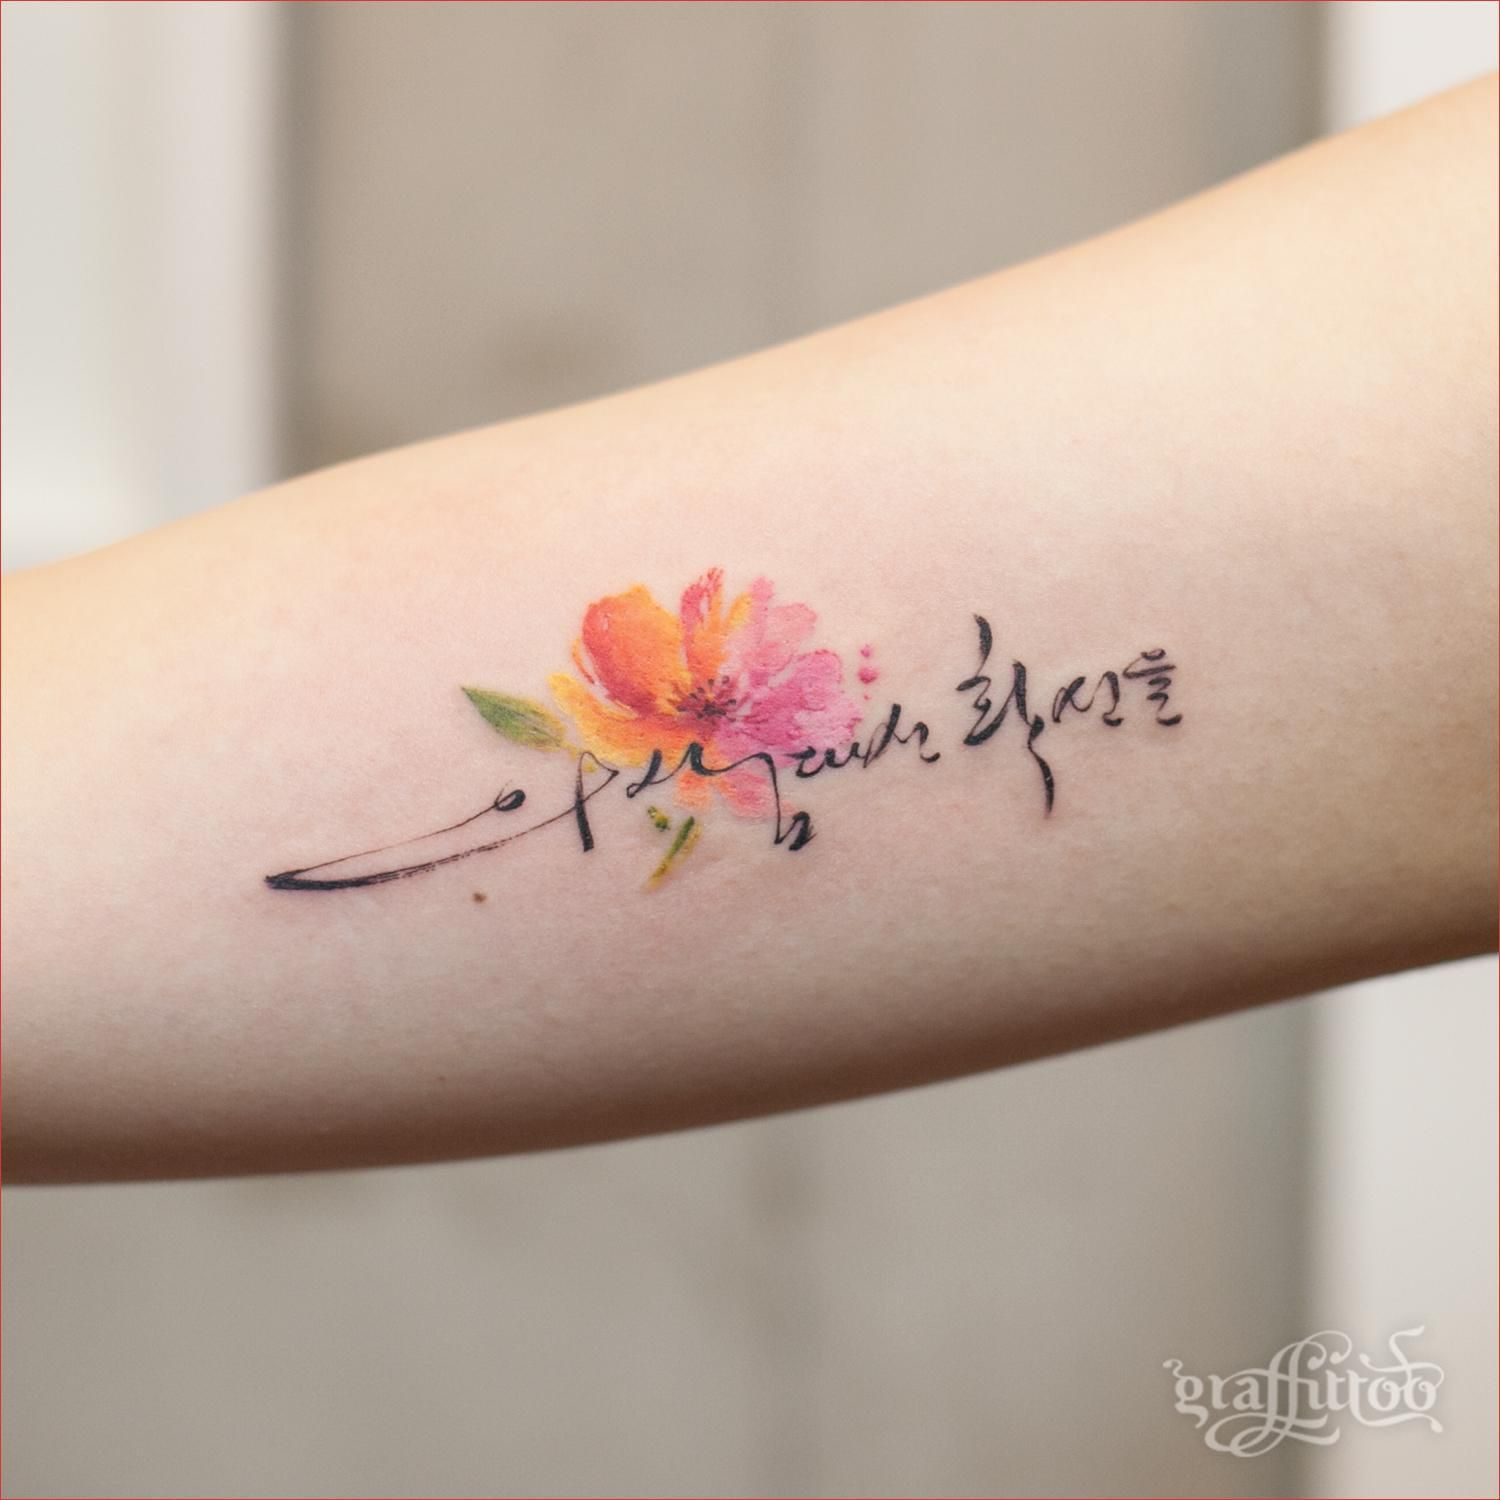 Best Calligraphy Tattoo Best Of Korean Calligraphy Tattoos Tats Tattoos Calligraphy